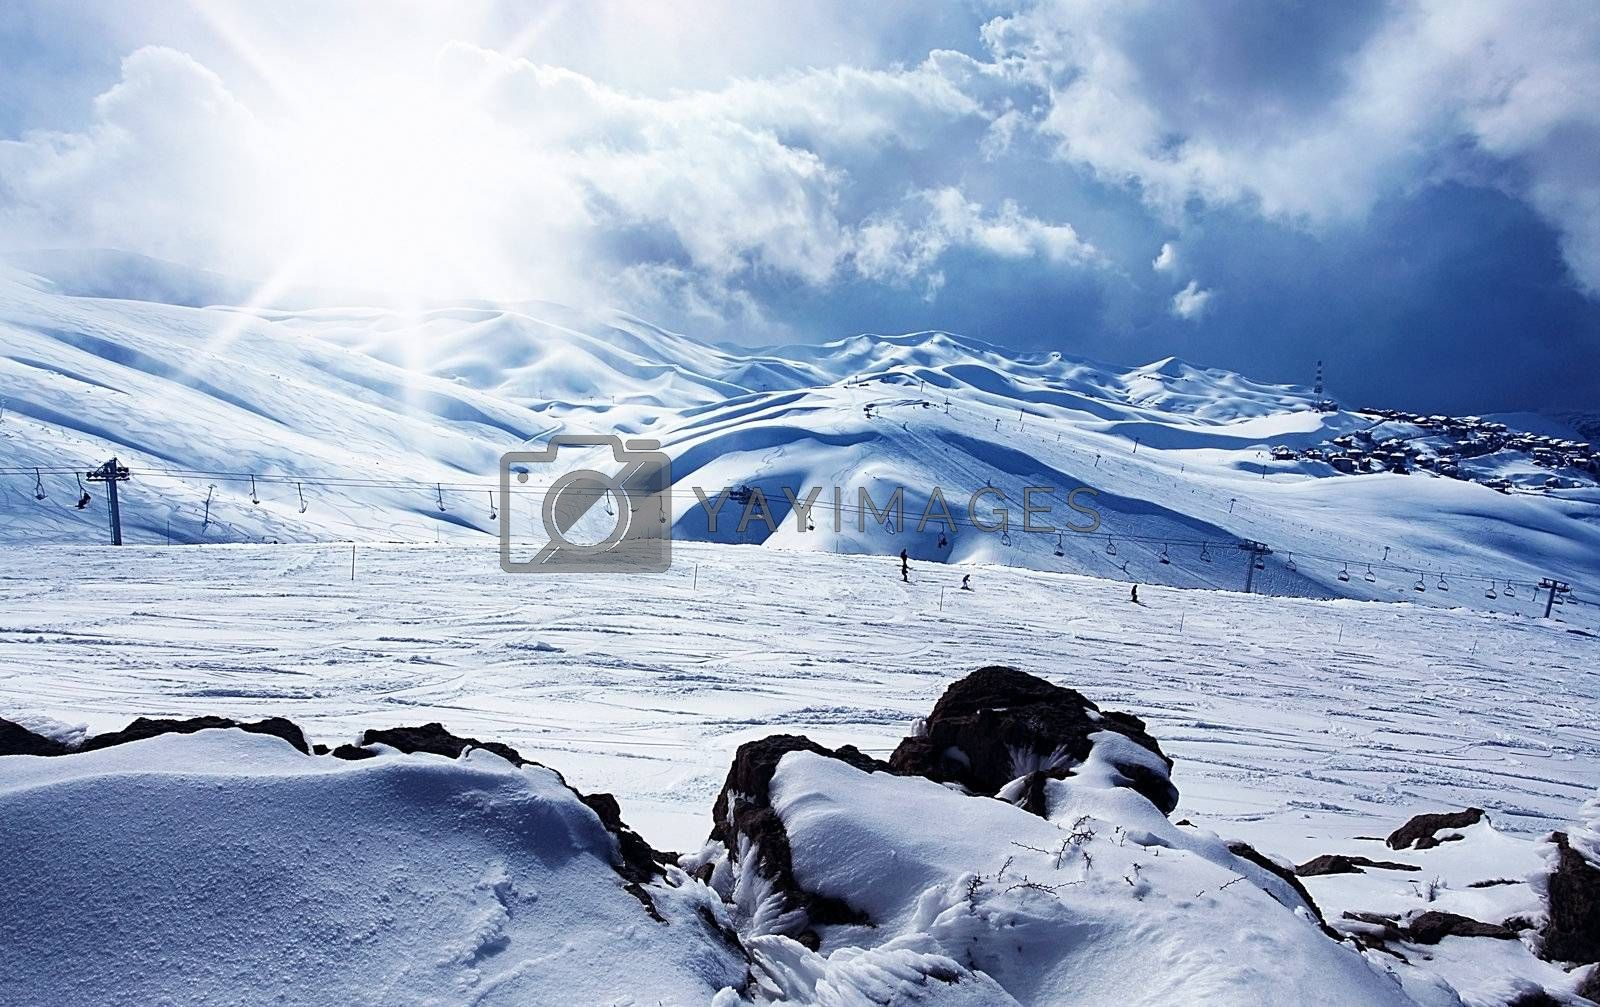 Winter mountain ski resort panoramic landscape with snow, sunny sky & chairlifts